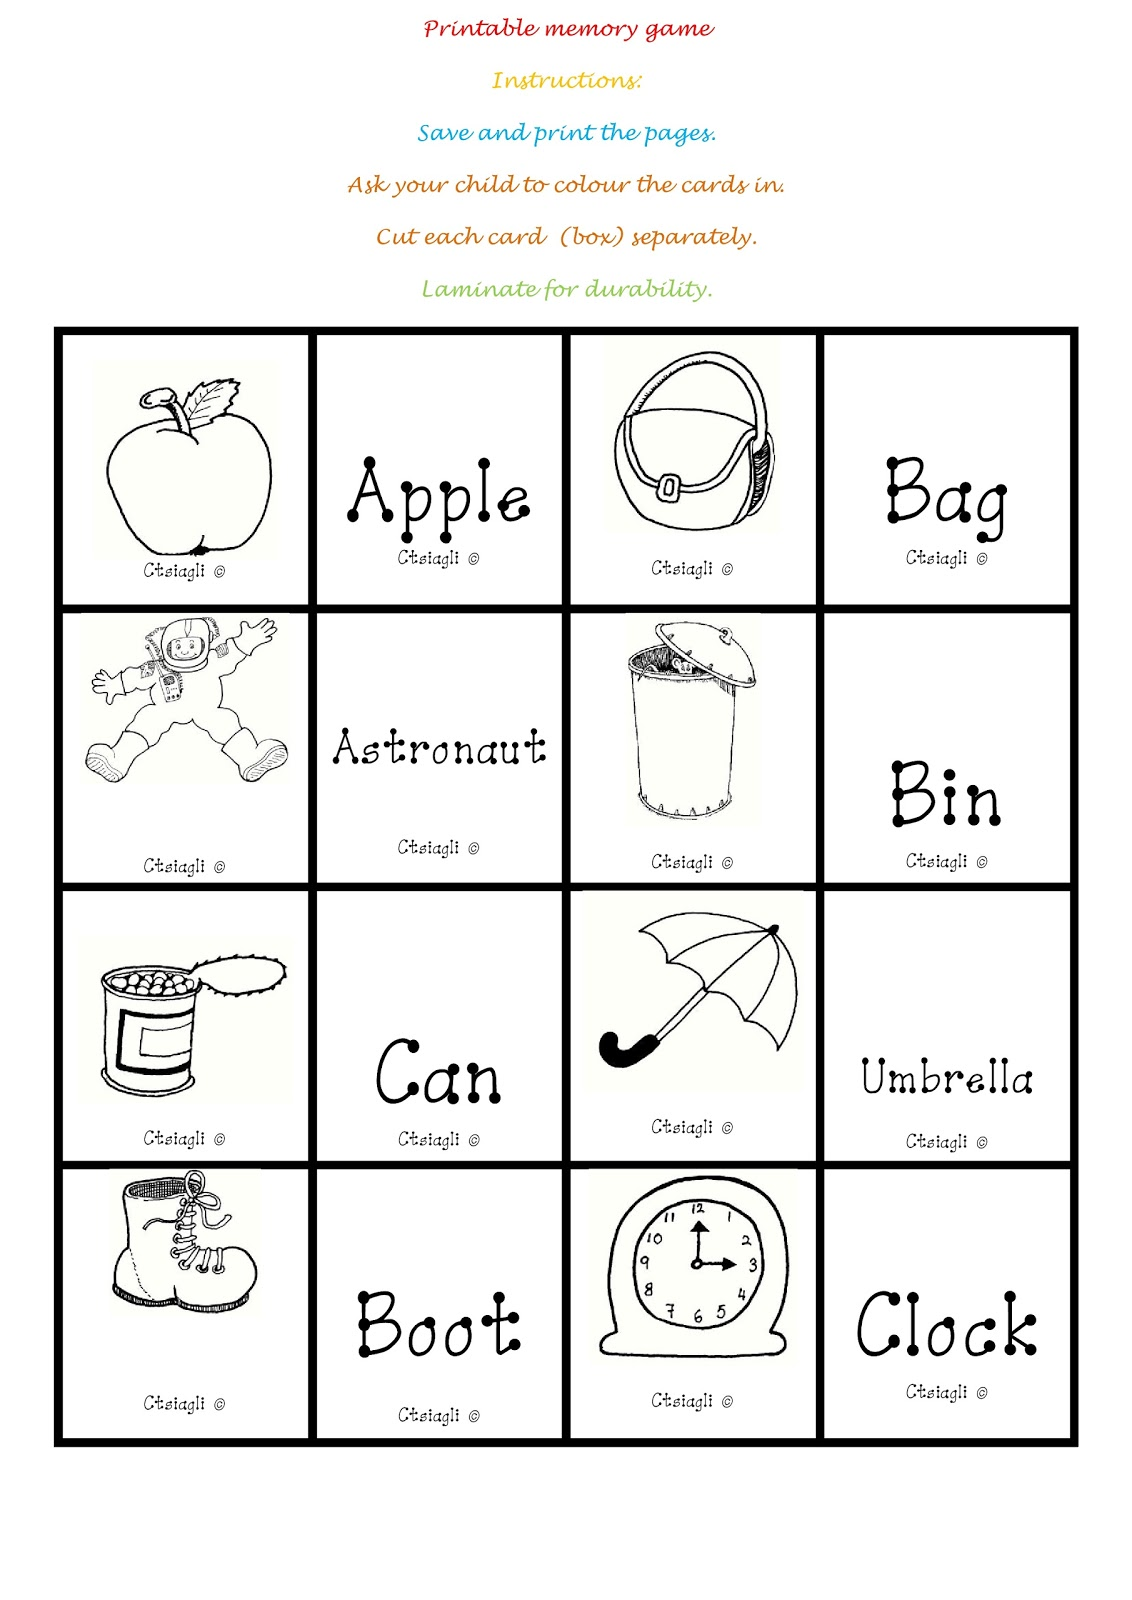 This is a picture of Invaluable Memory Games for Seniors Printable